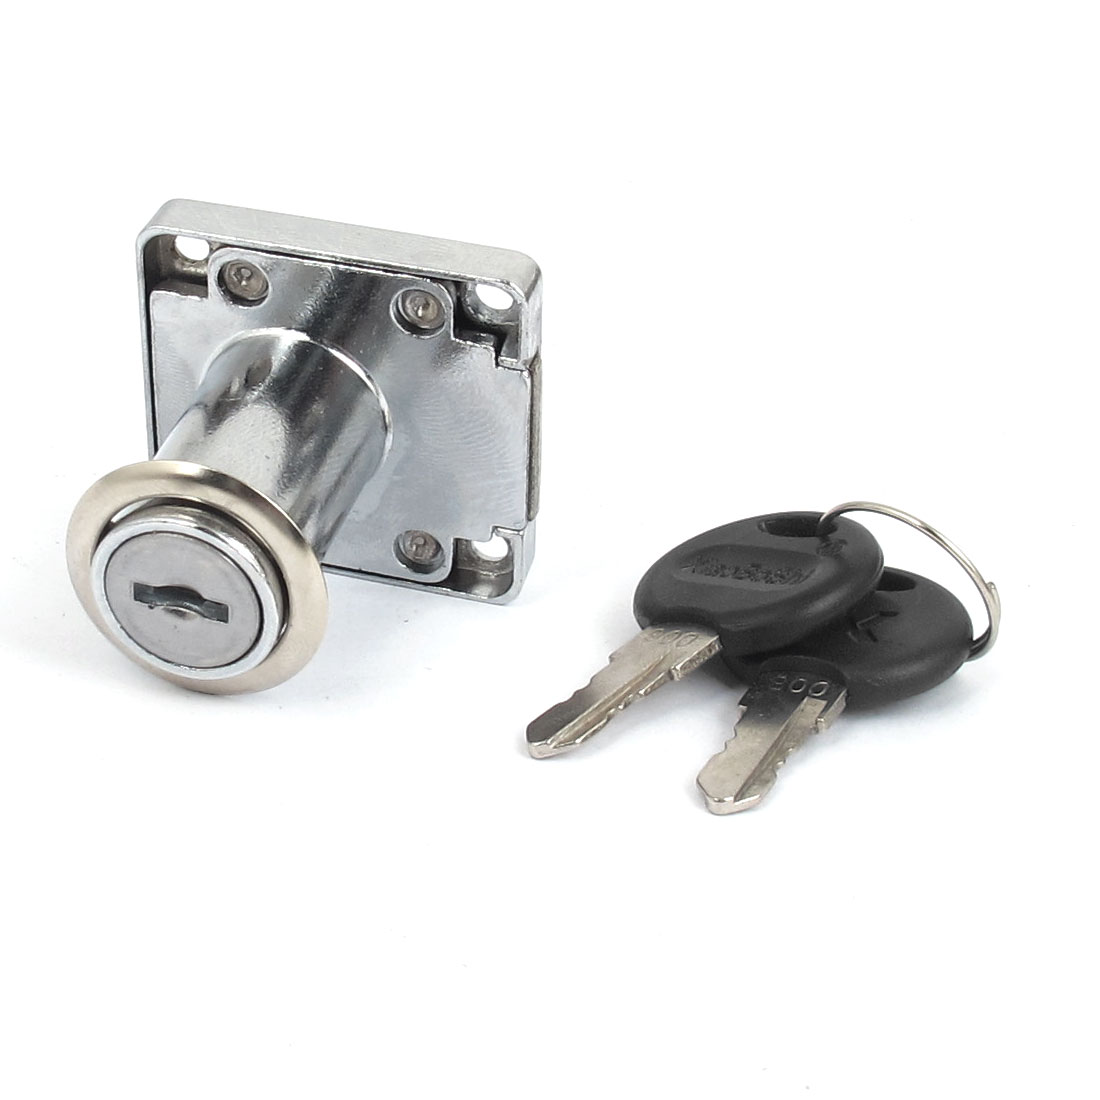 Office Desk Funiture Secure Locking Metal Drawer Lock Silver Tone w 2 Keys